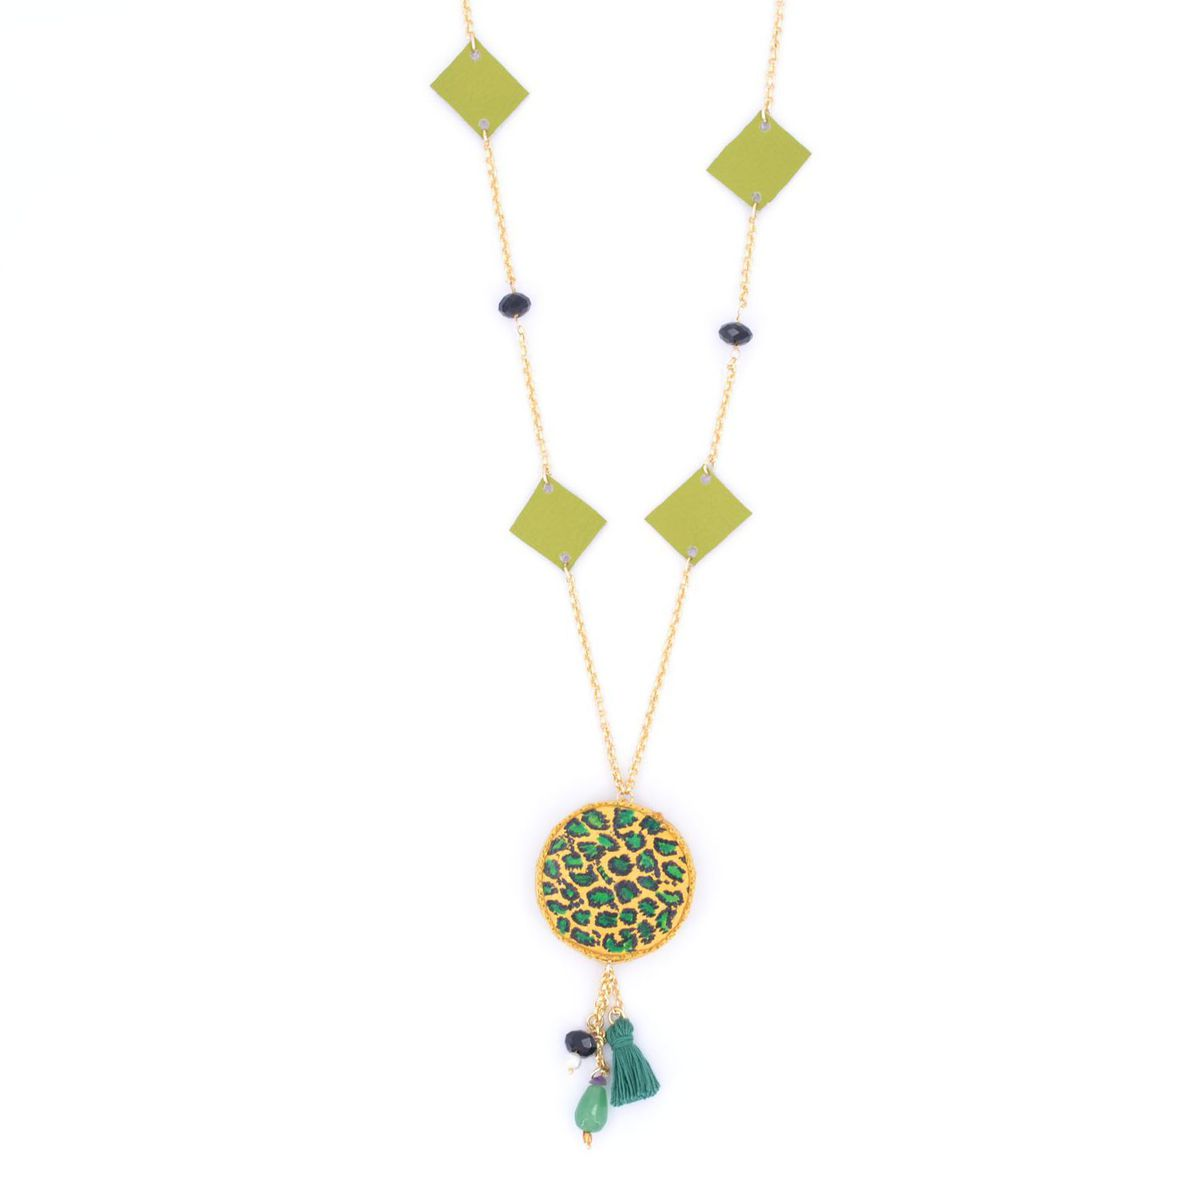 Green Zebra Jungle Necklace Green BRASS Gioielli